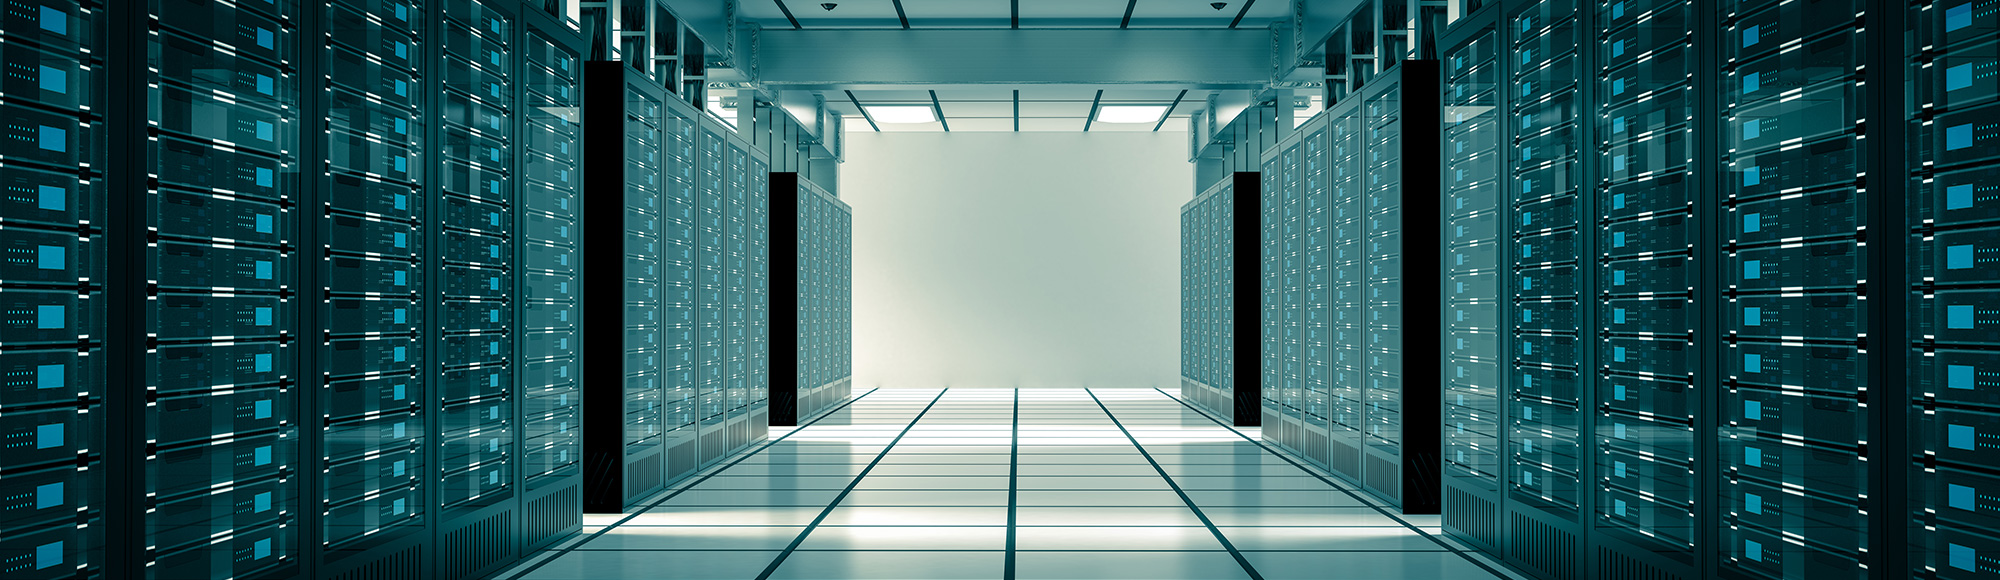 Data Centres Examples From Industry Of Dycem Floor Mats Use